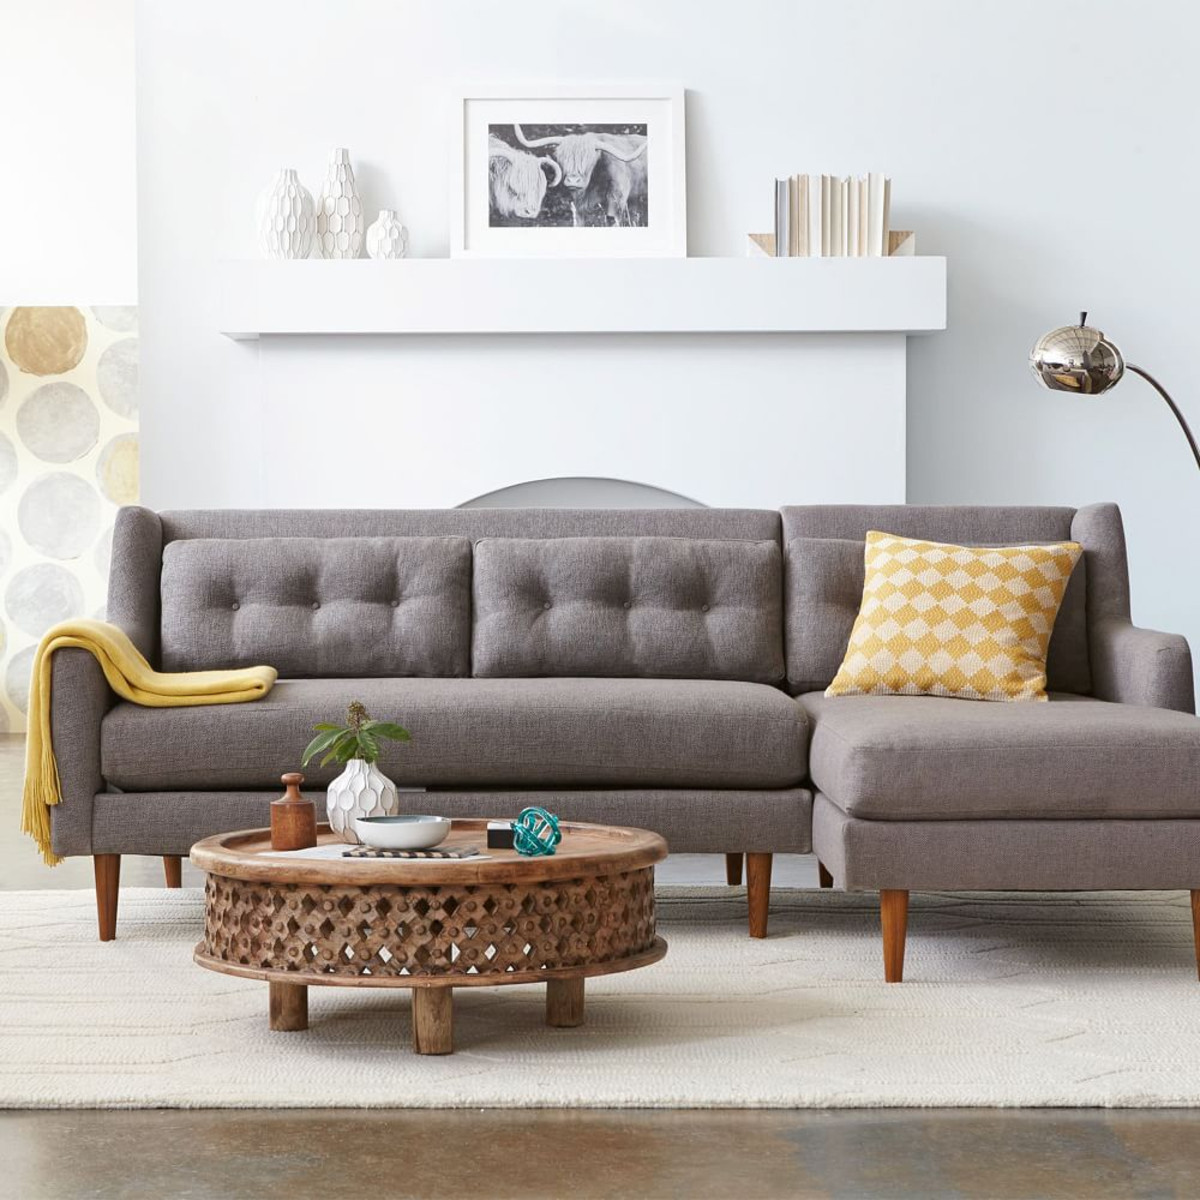 Admirable 2 piece sectional sofas with chaise flooding for Traditional sectional